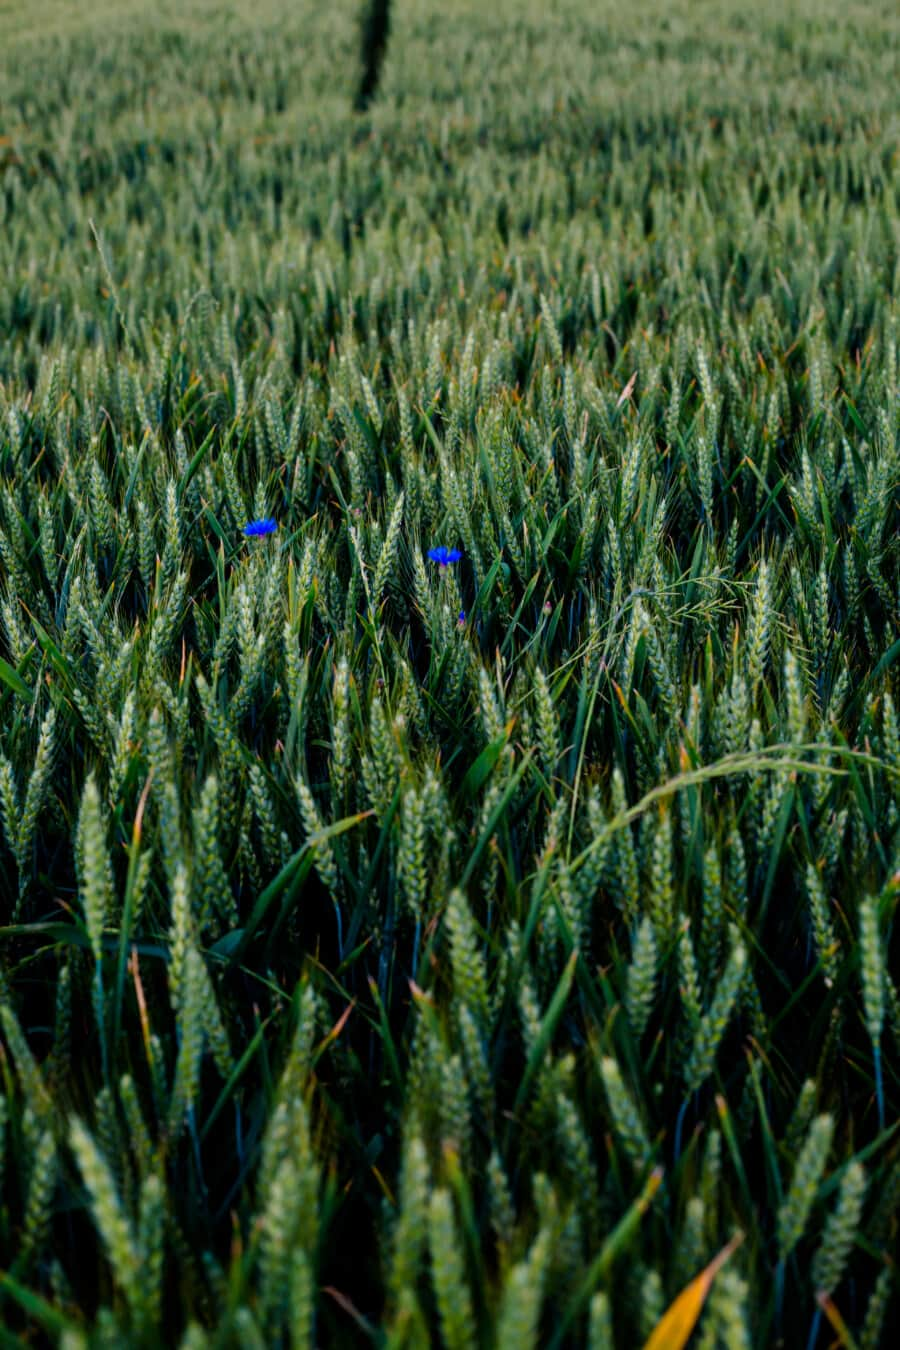 wheatfield, straw, green leaves, field, agriculture, wheat, cereal, crop, outdoors, farm